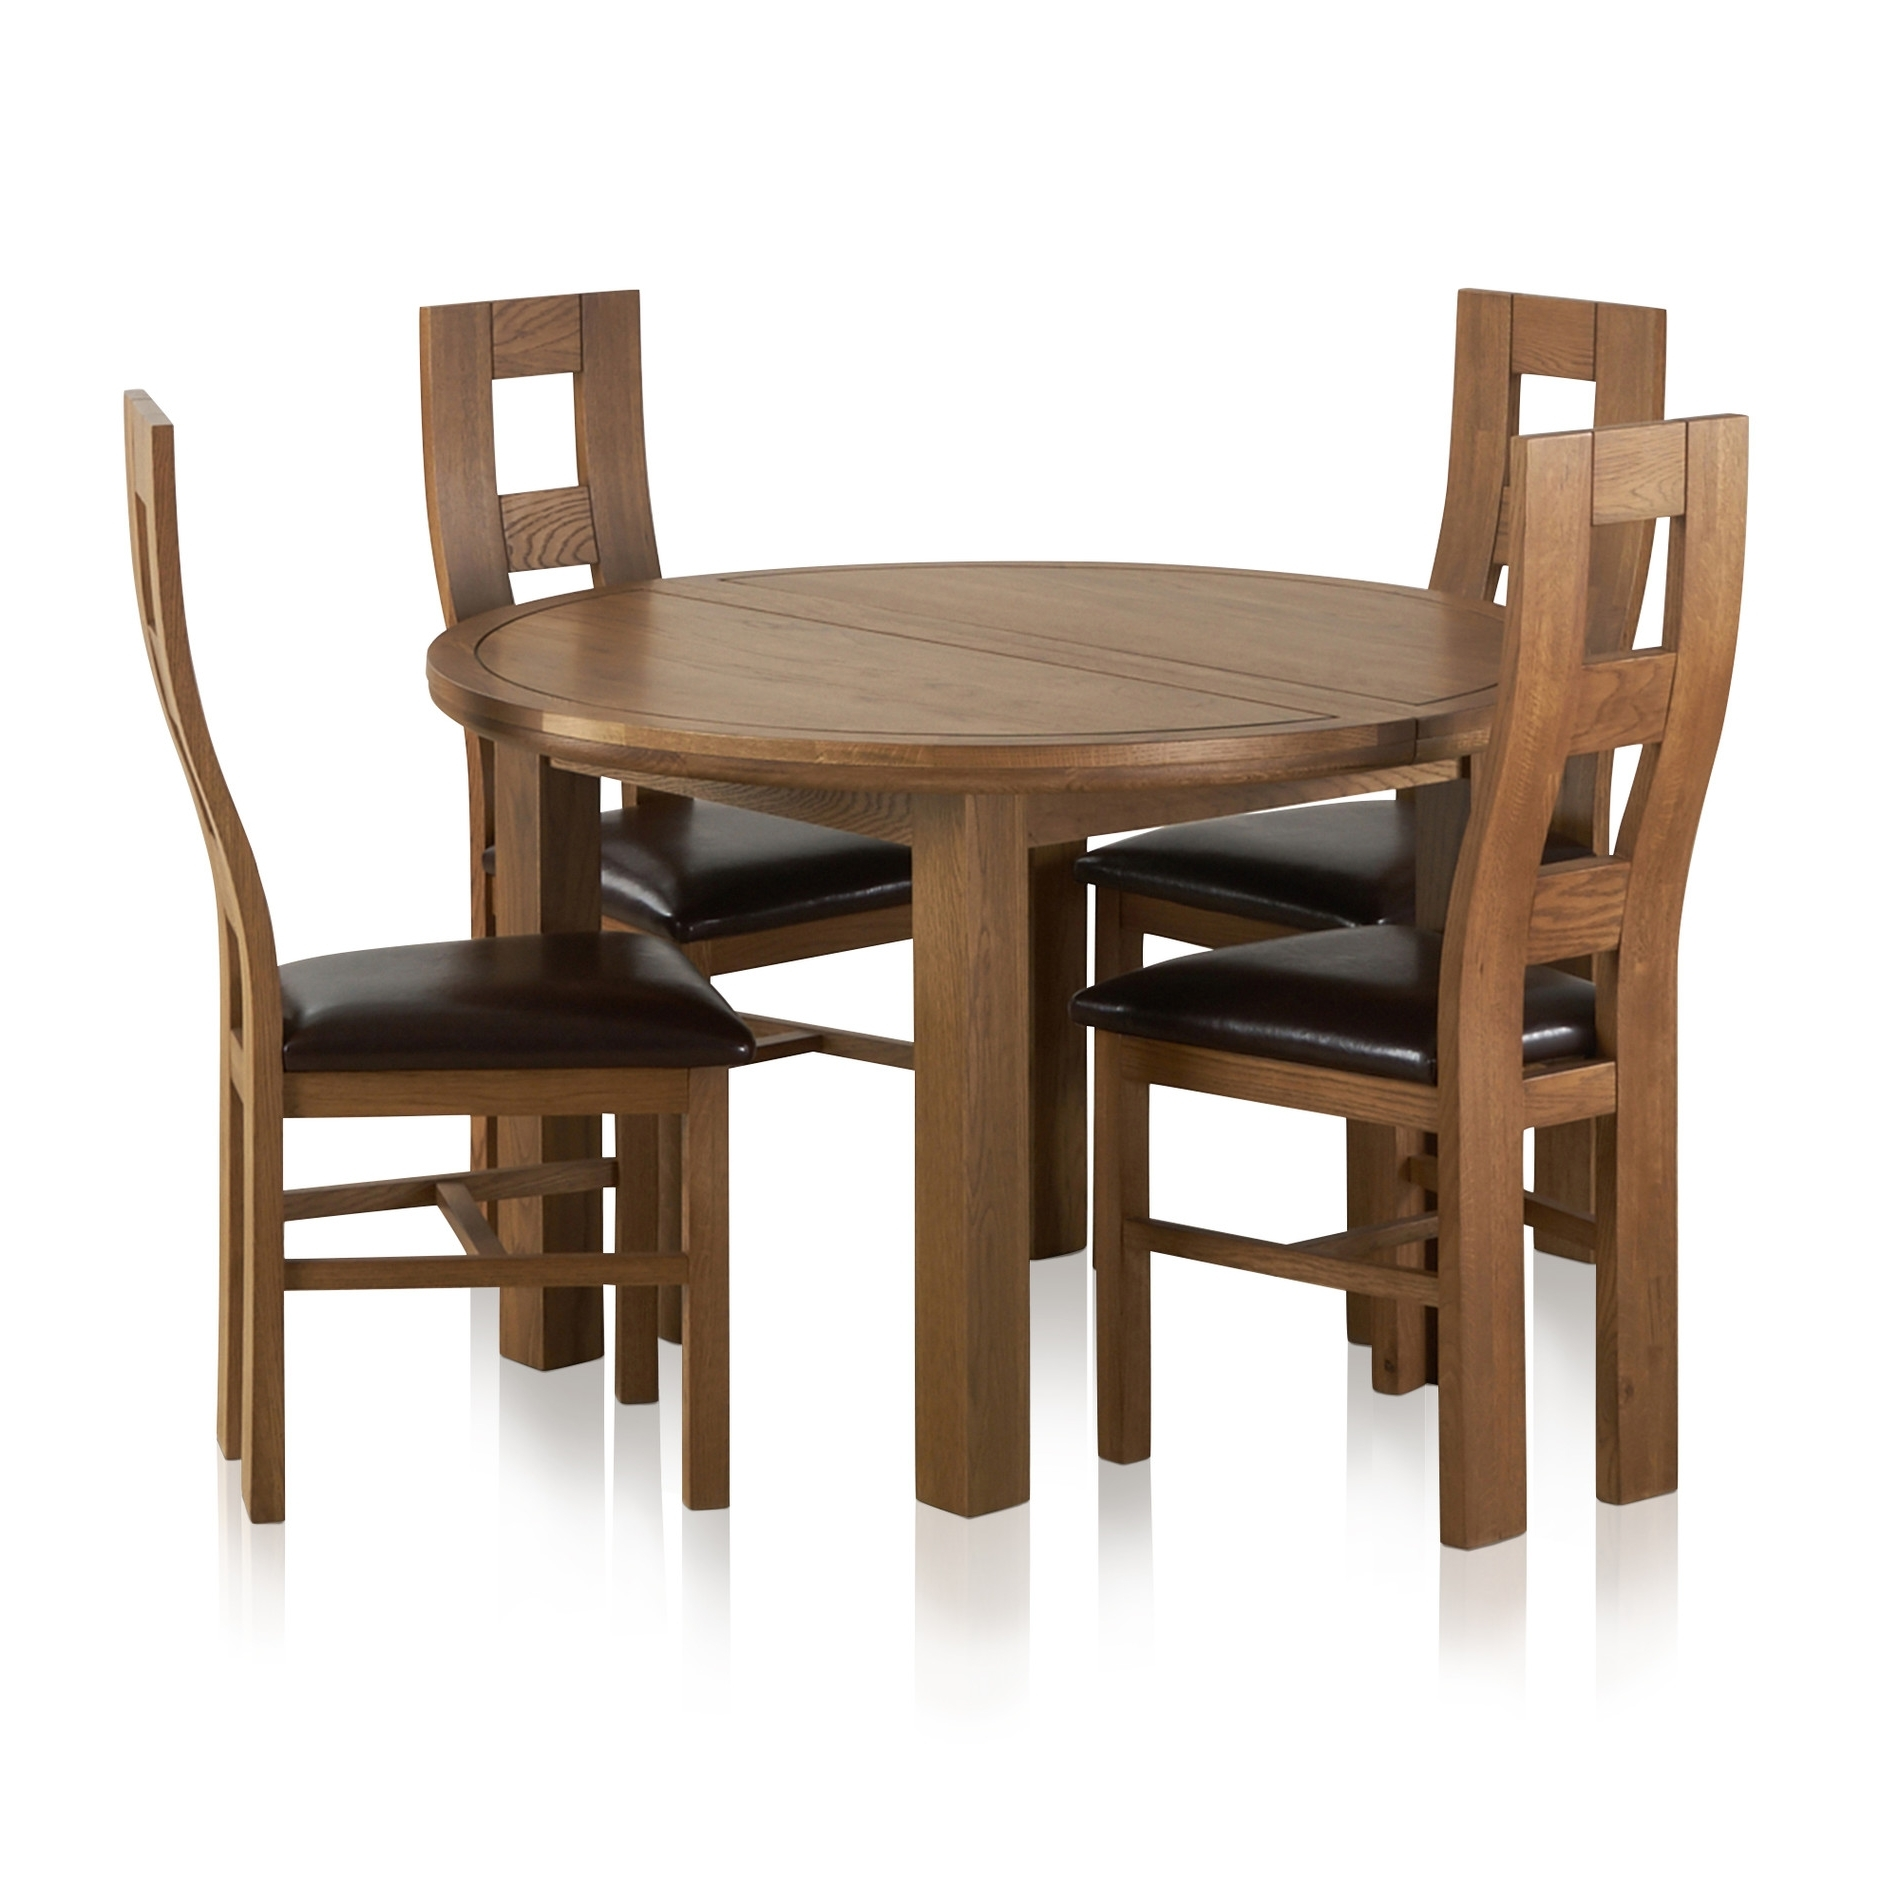 Popular Round Extending Oak Dining Tables And Chairs Intended For Knightsbridge Round Extending Dining Table + 4 Leather Chairs (View 16 of 25)